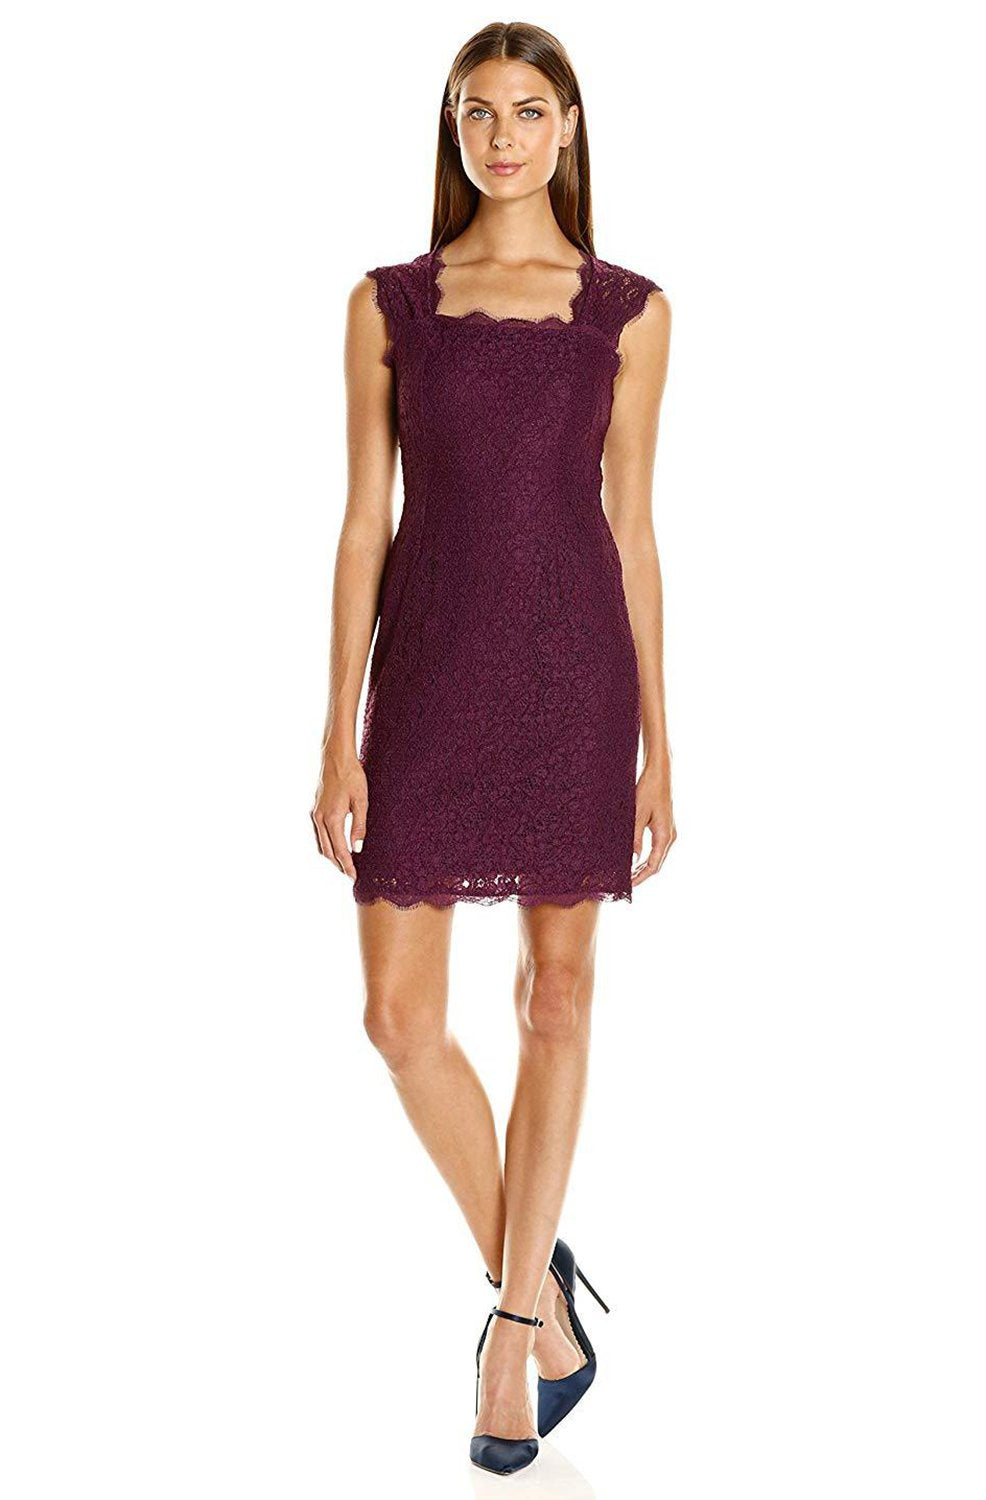 Adrianna Papell - 41895460 Floral Lace Square Neck Cutout Dress In Purple